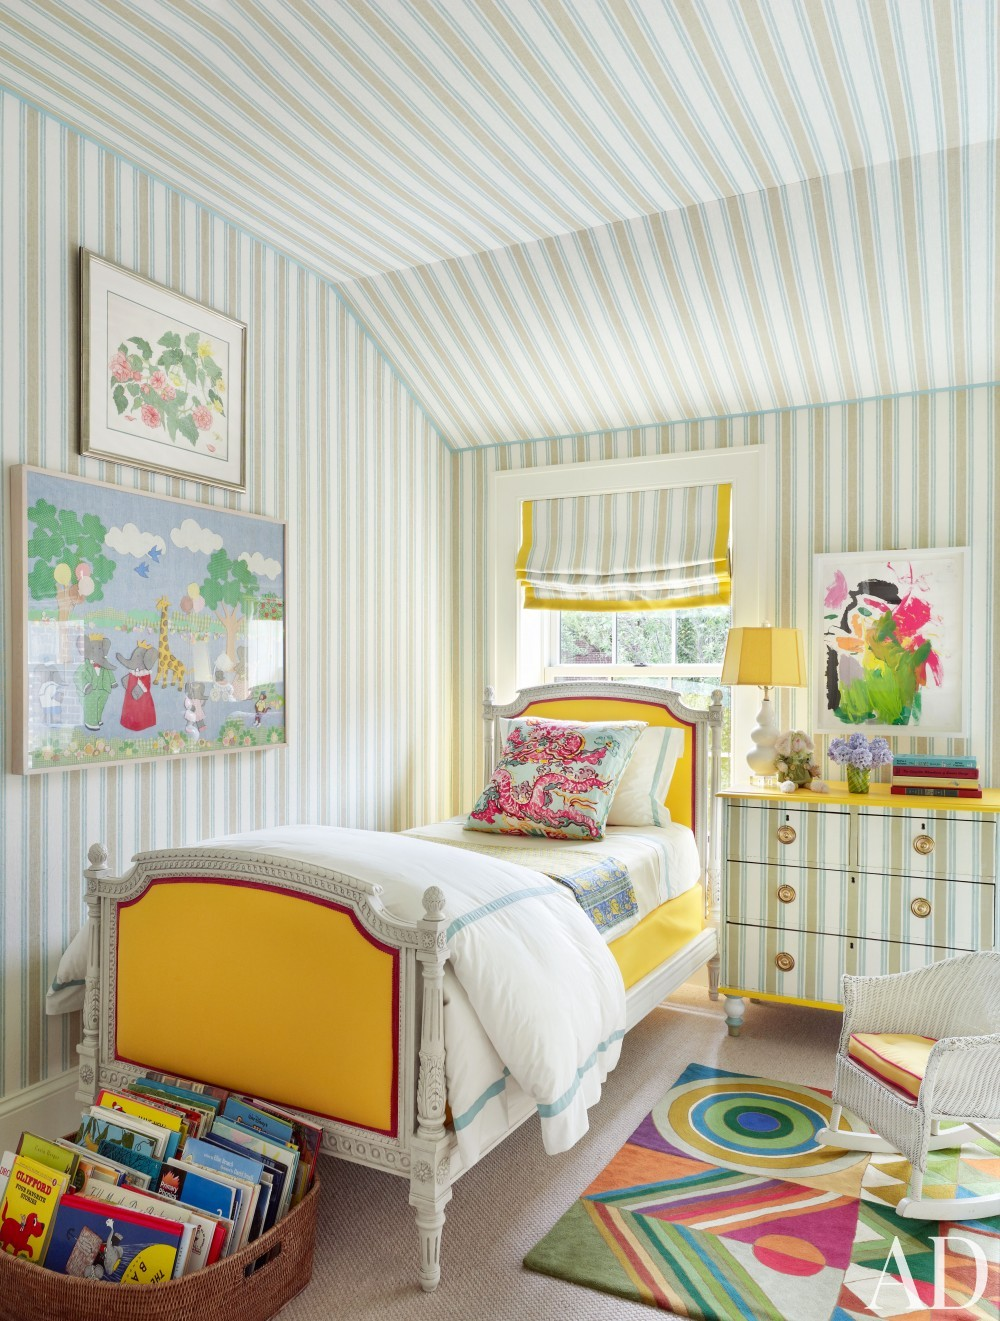 Exotic Bedroom by Nick Olsen and Baxt Ingui Architects in Brooklyn, NY